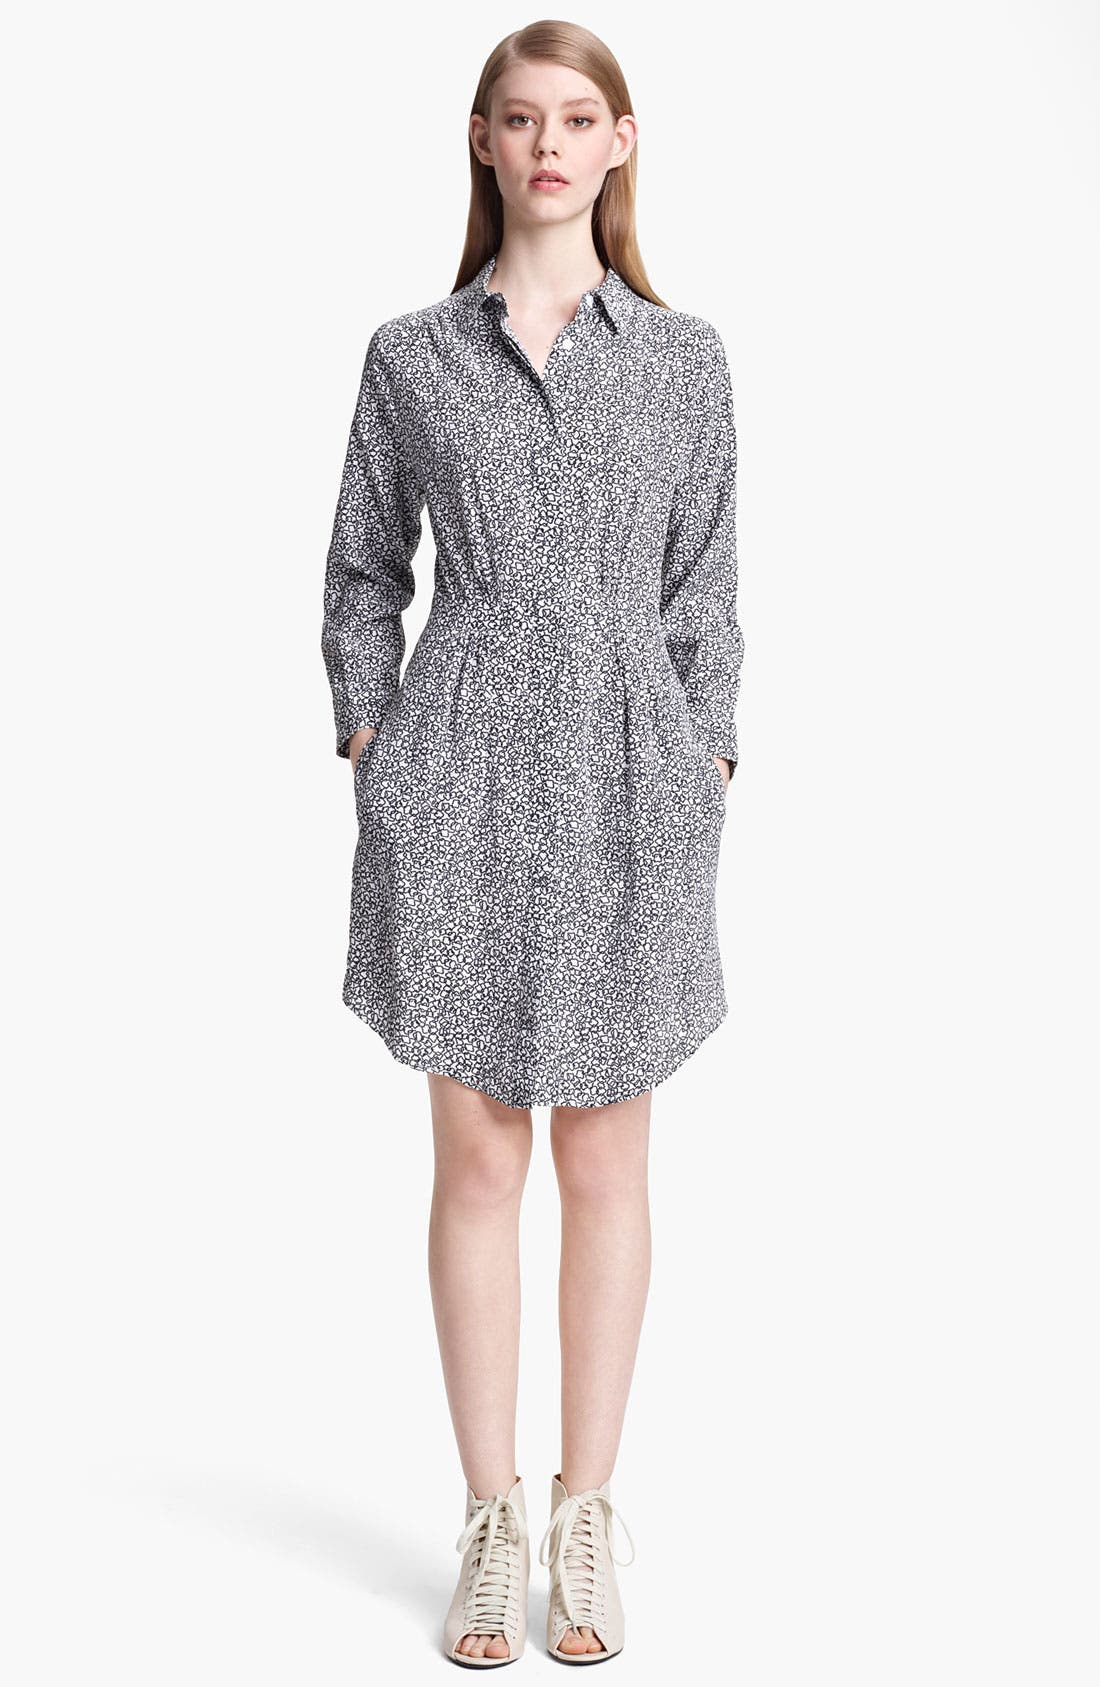 Alternate Image 1 Selected - Band of Outsiders Print Crêpe de Chine Shirtdress